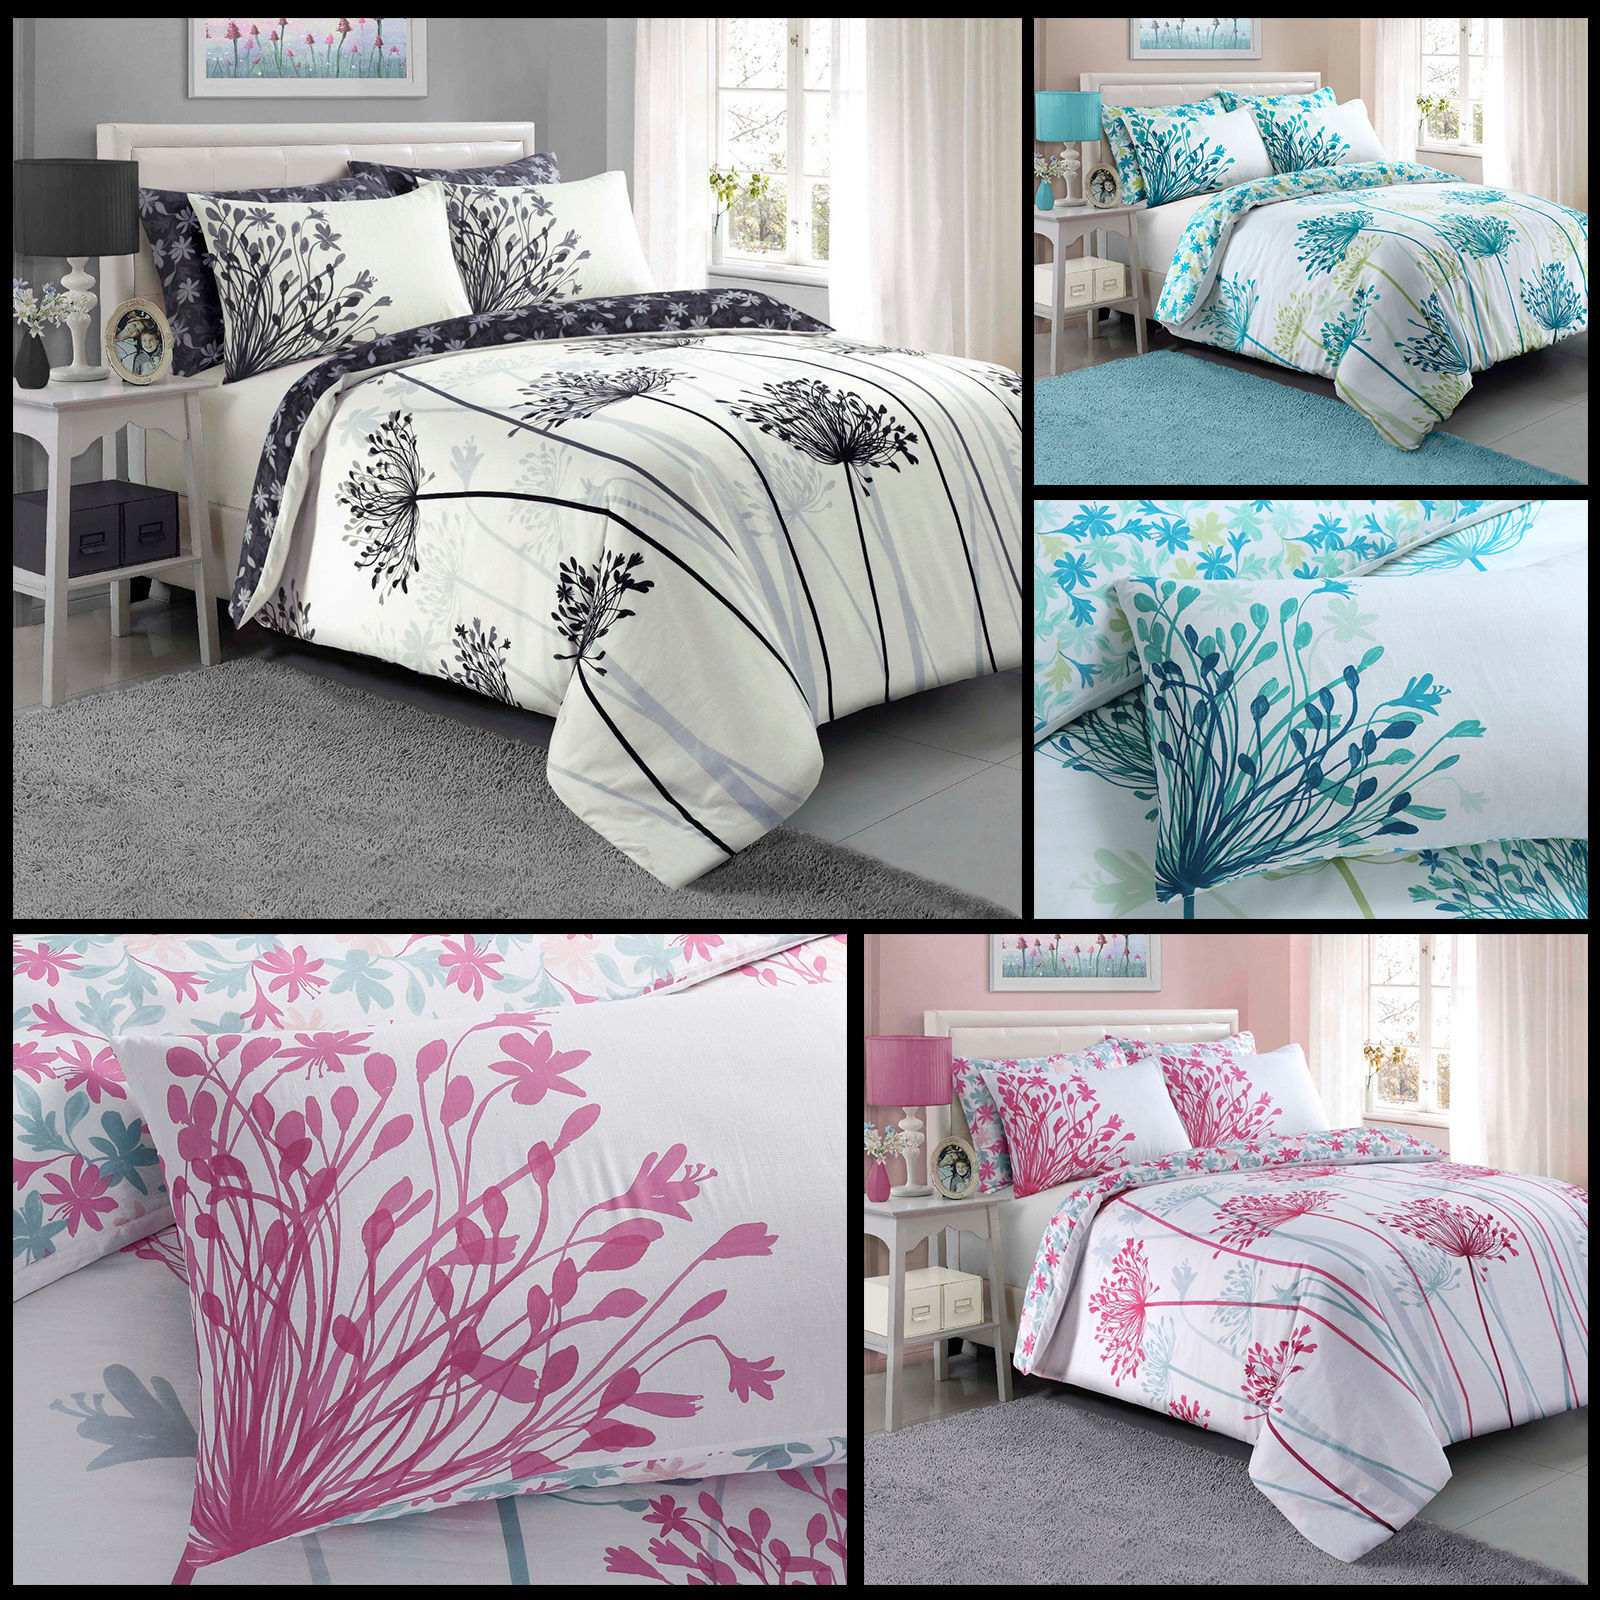 Meadow Floral Luxury Duvet Covers Quilt Cover Reversible Bed